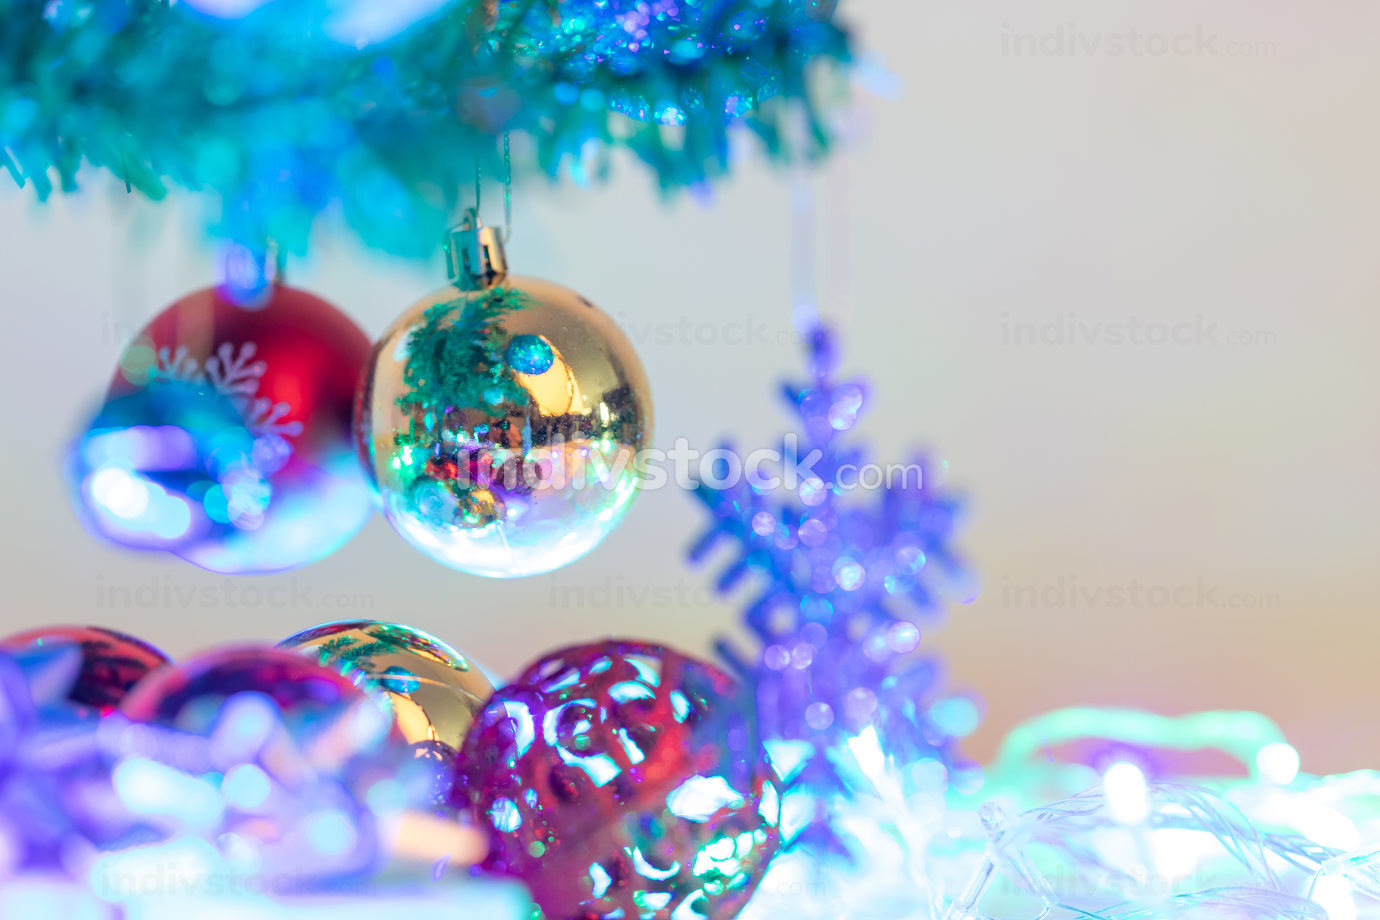 Christmas decorations to celebrate the holiday season